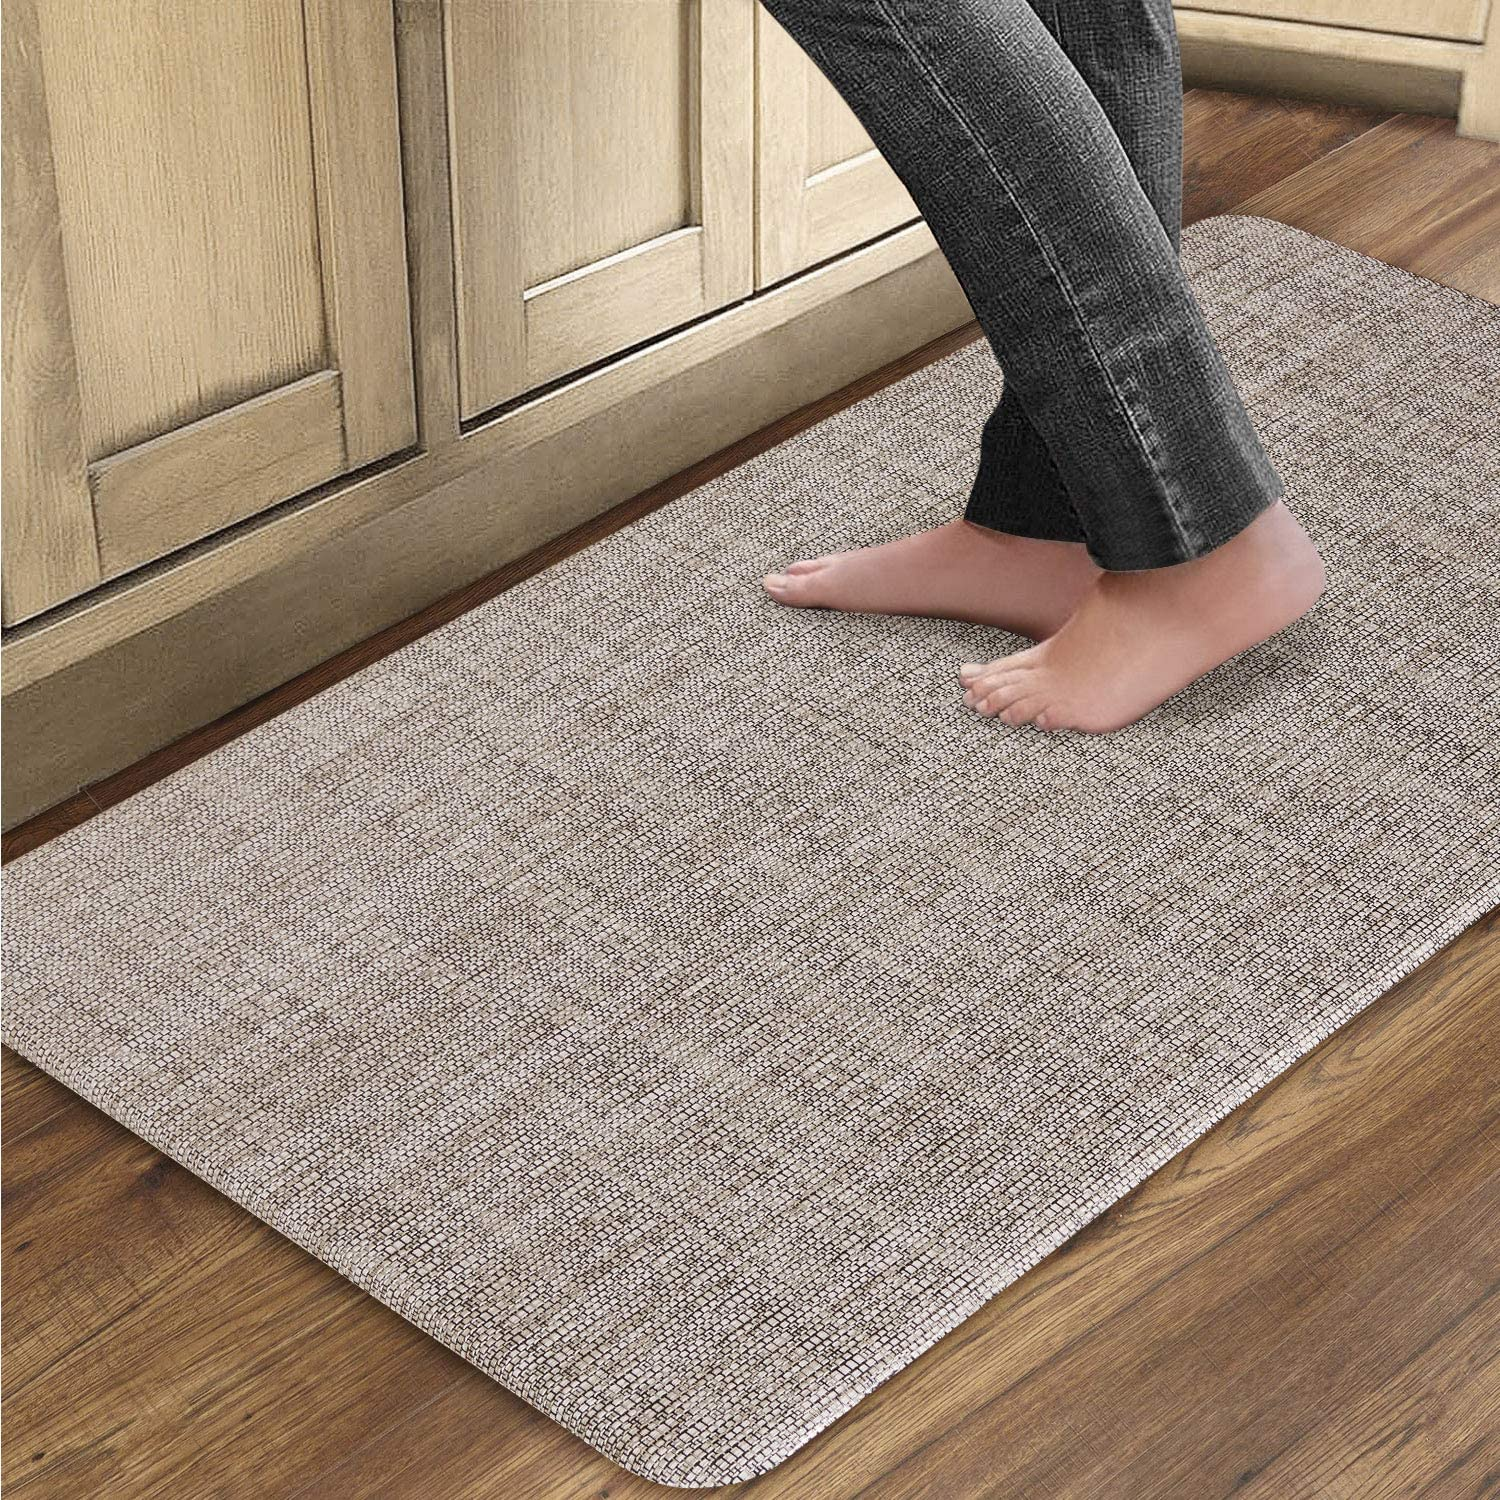 QSY Home Kitchen Anti Fatigue Rugs 20x39x1/2-Inch Floor Comfort Mats Waterproof Non Skid Thick Cushioned for Standing Desk Garages